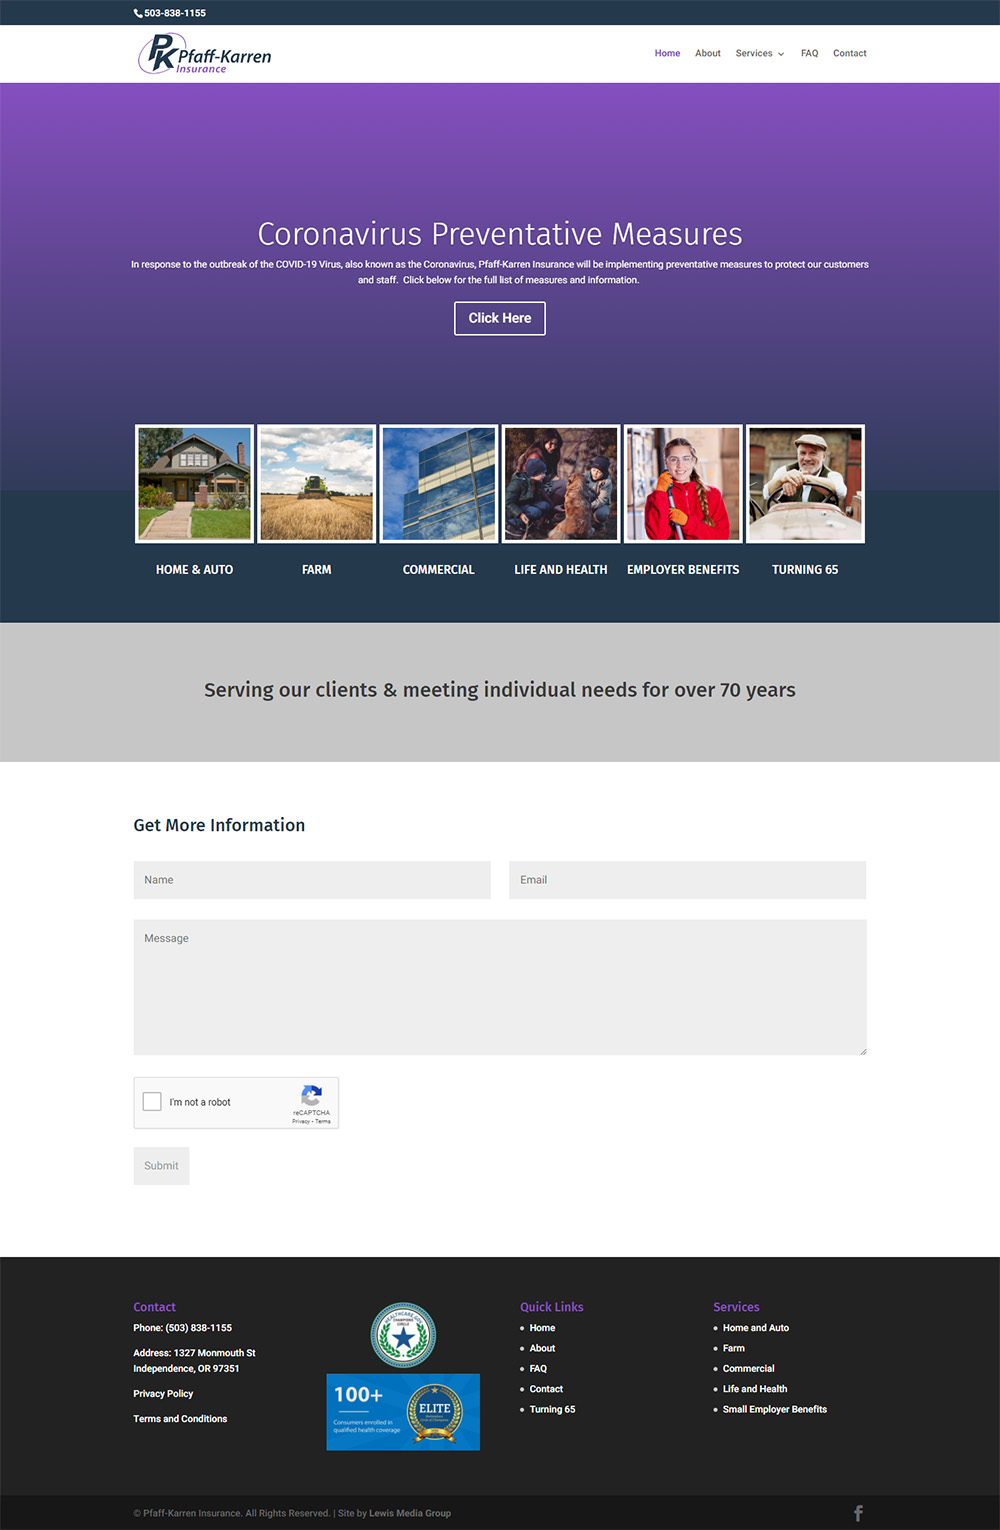 K Insurance Group (Pfaff-Karren Insurance) home page before redesign